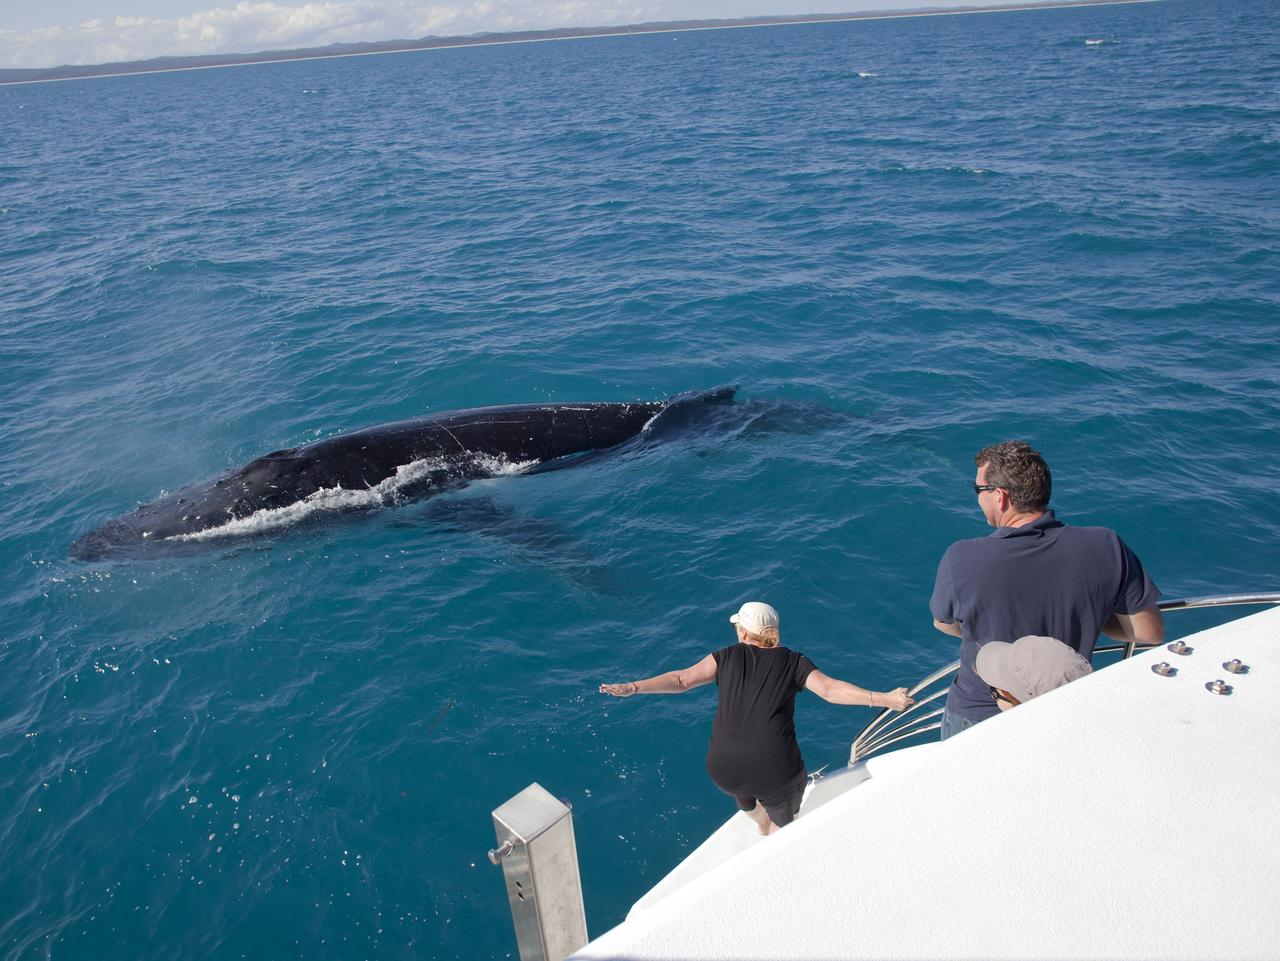 Humpback whale in Platypus Bay off Fraser Island.